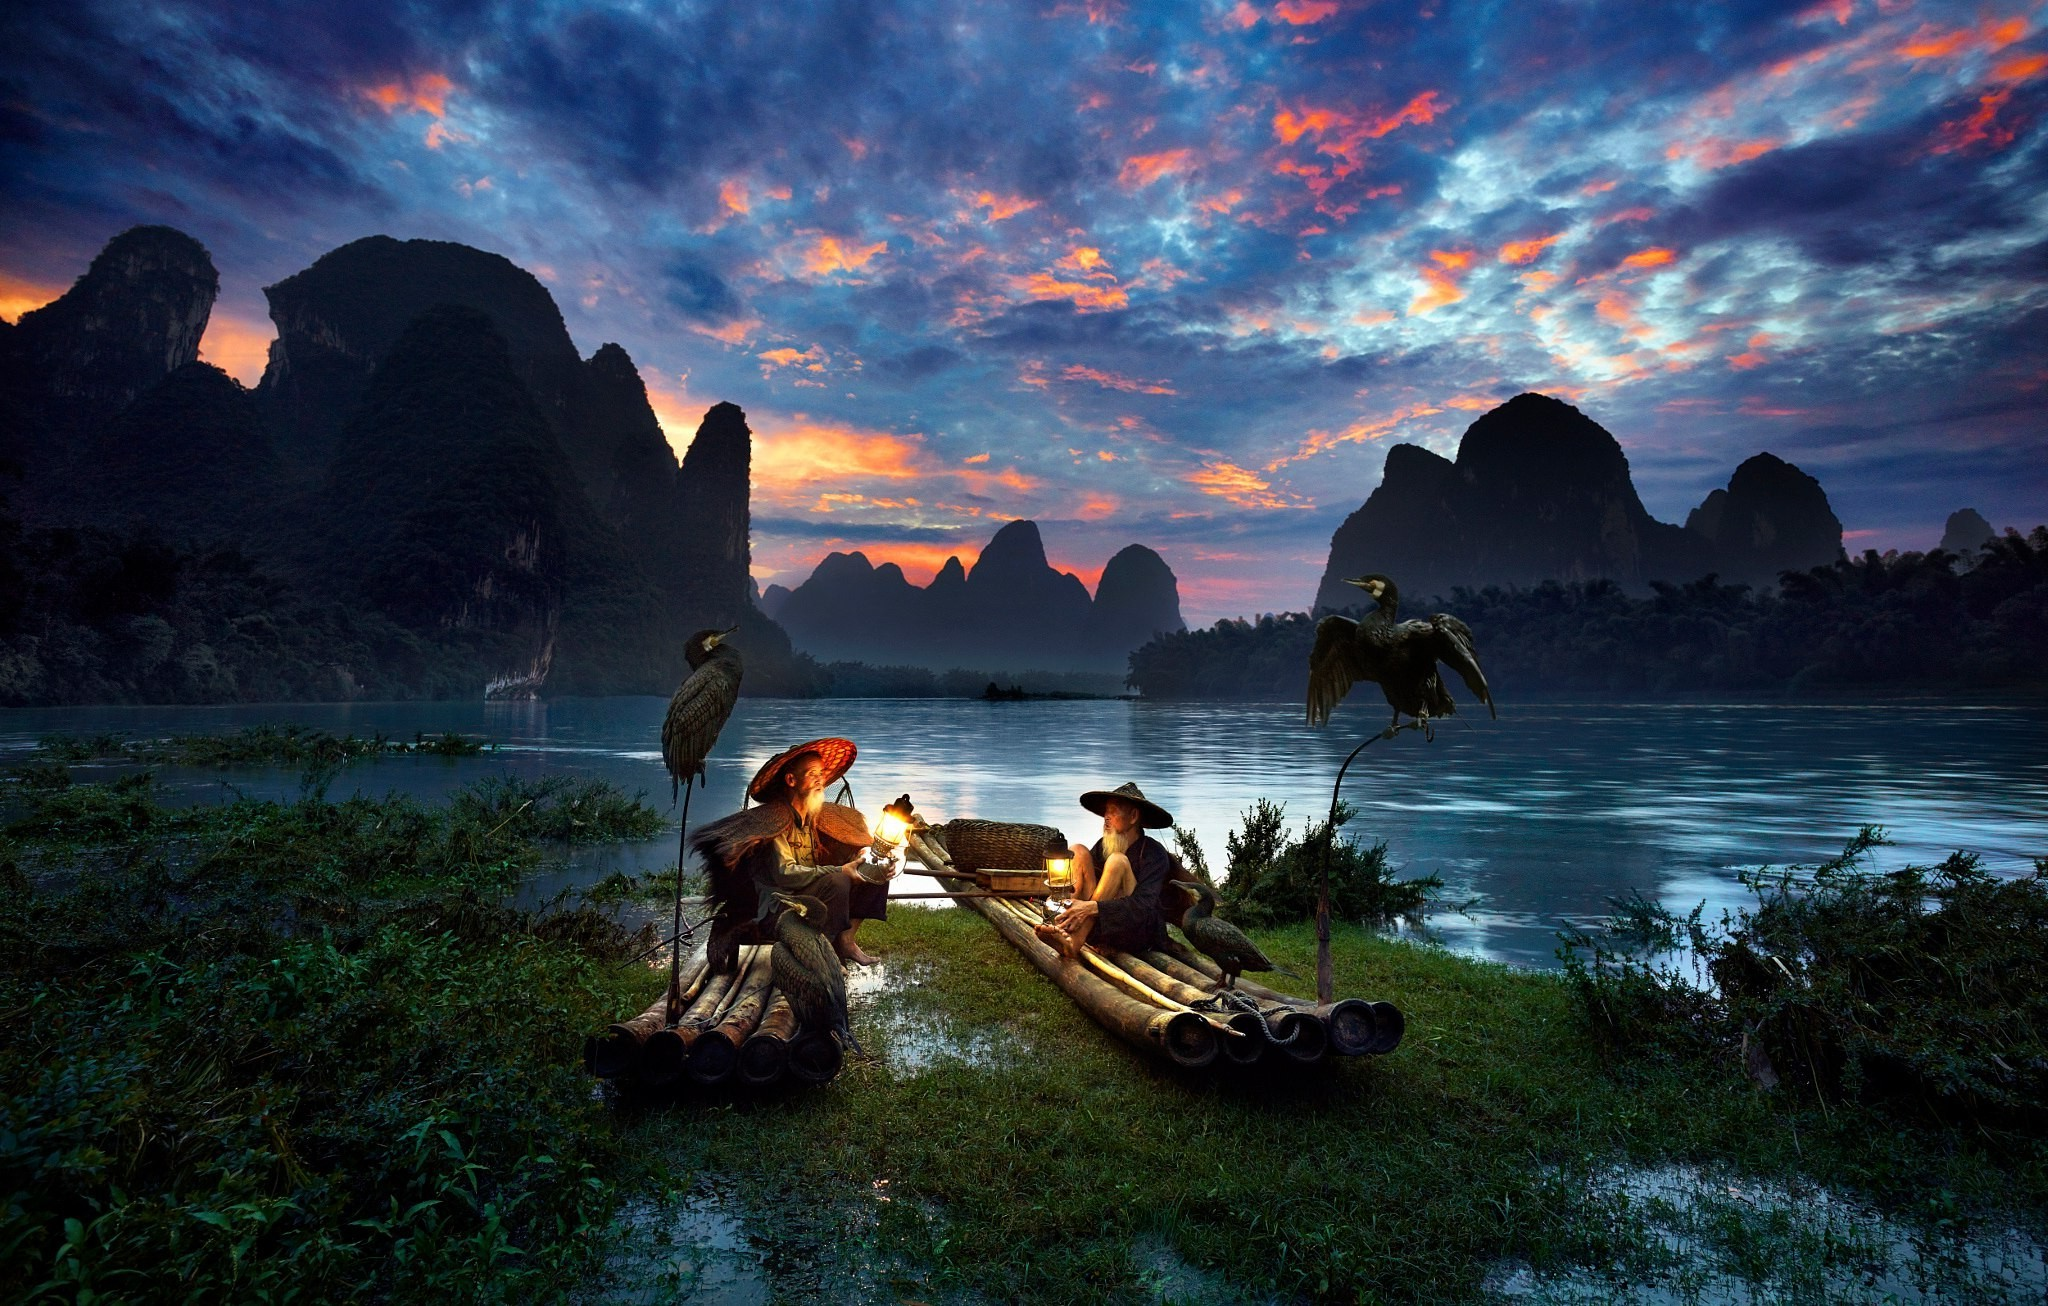 chinese hd background desktop - photo #44